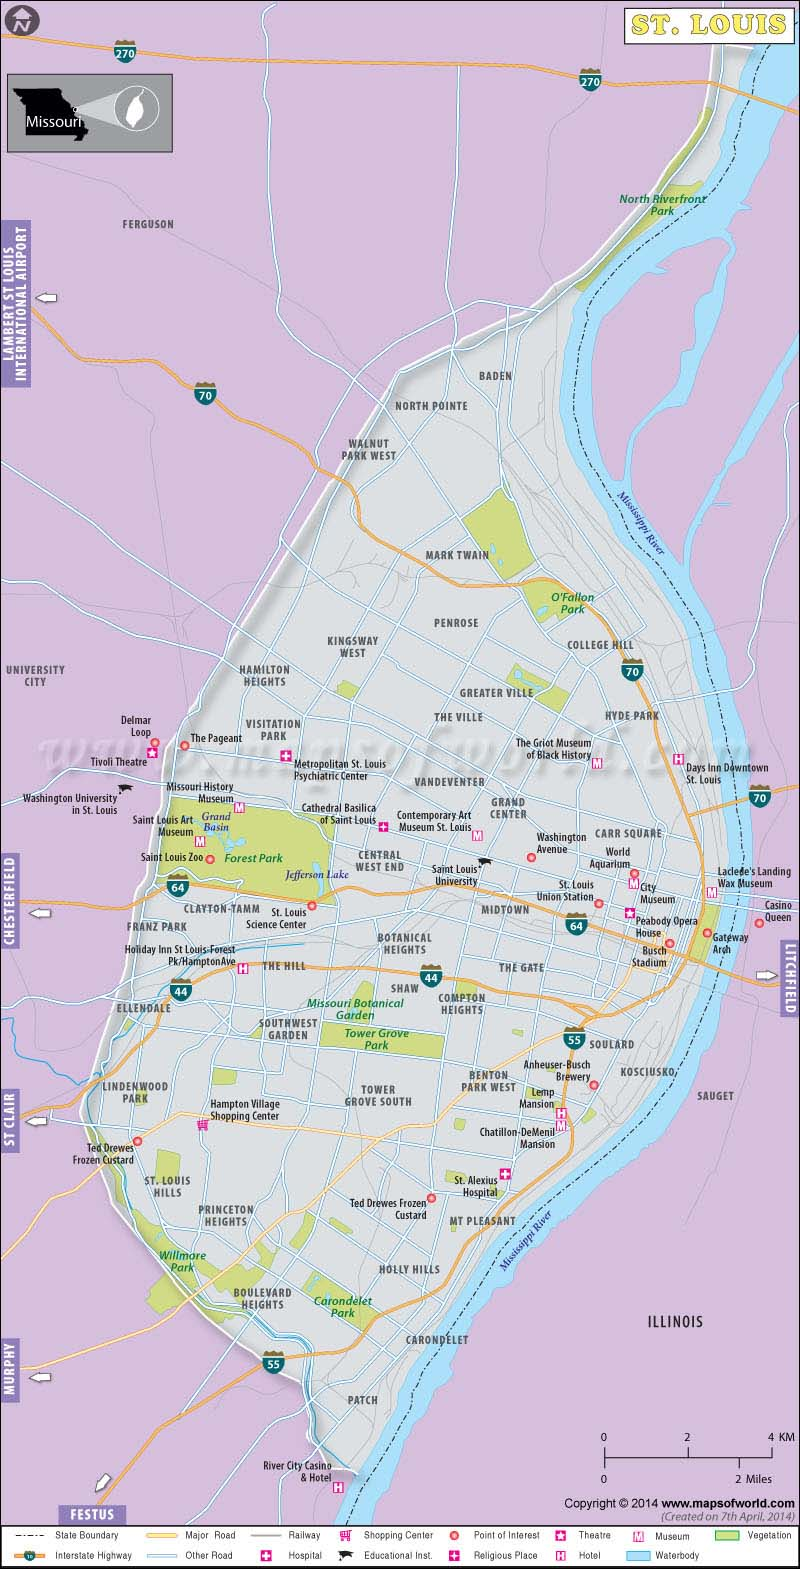 St Louis Map, Map of St Louis, St Louis Missouri Map